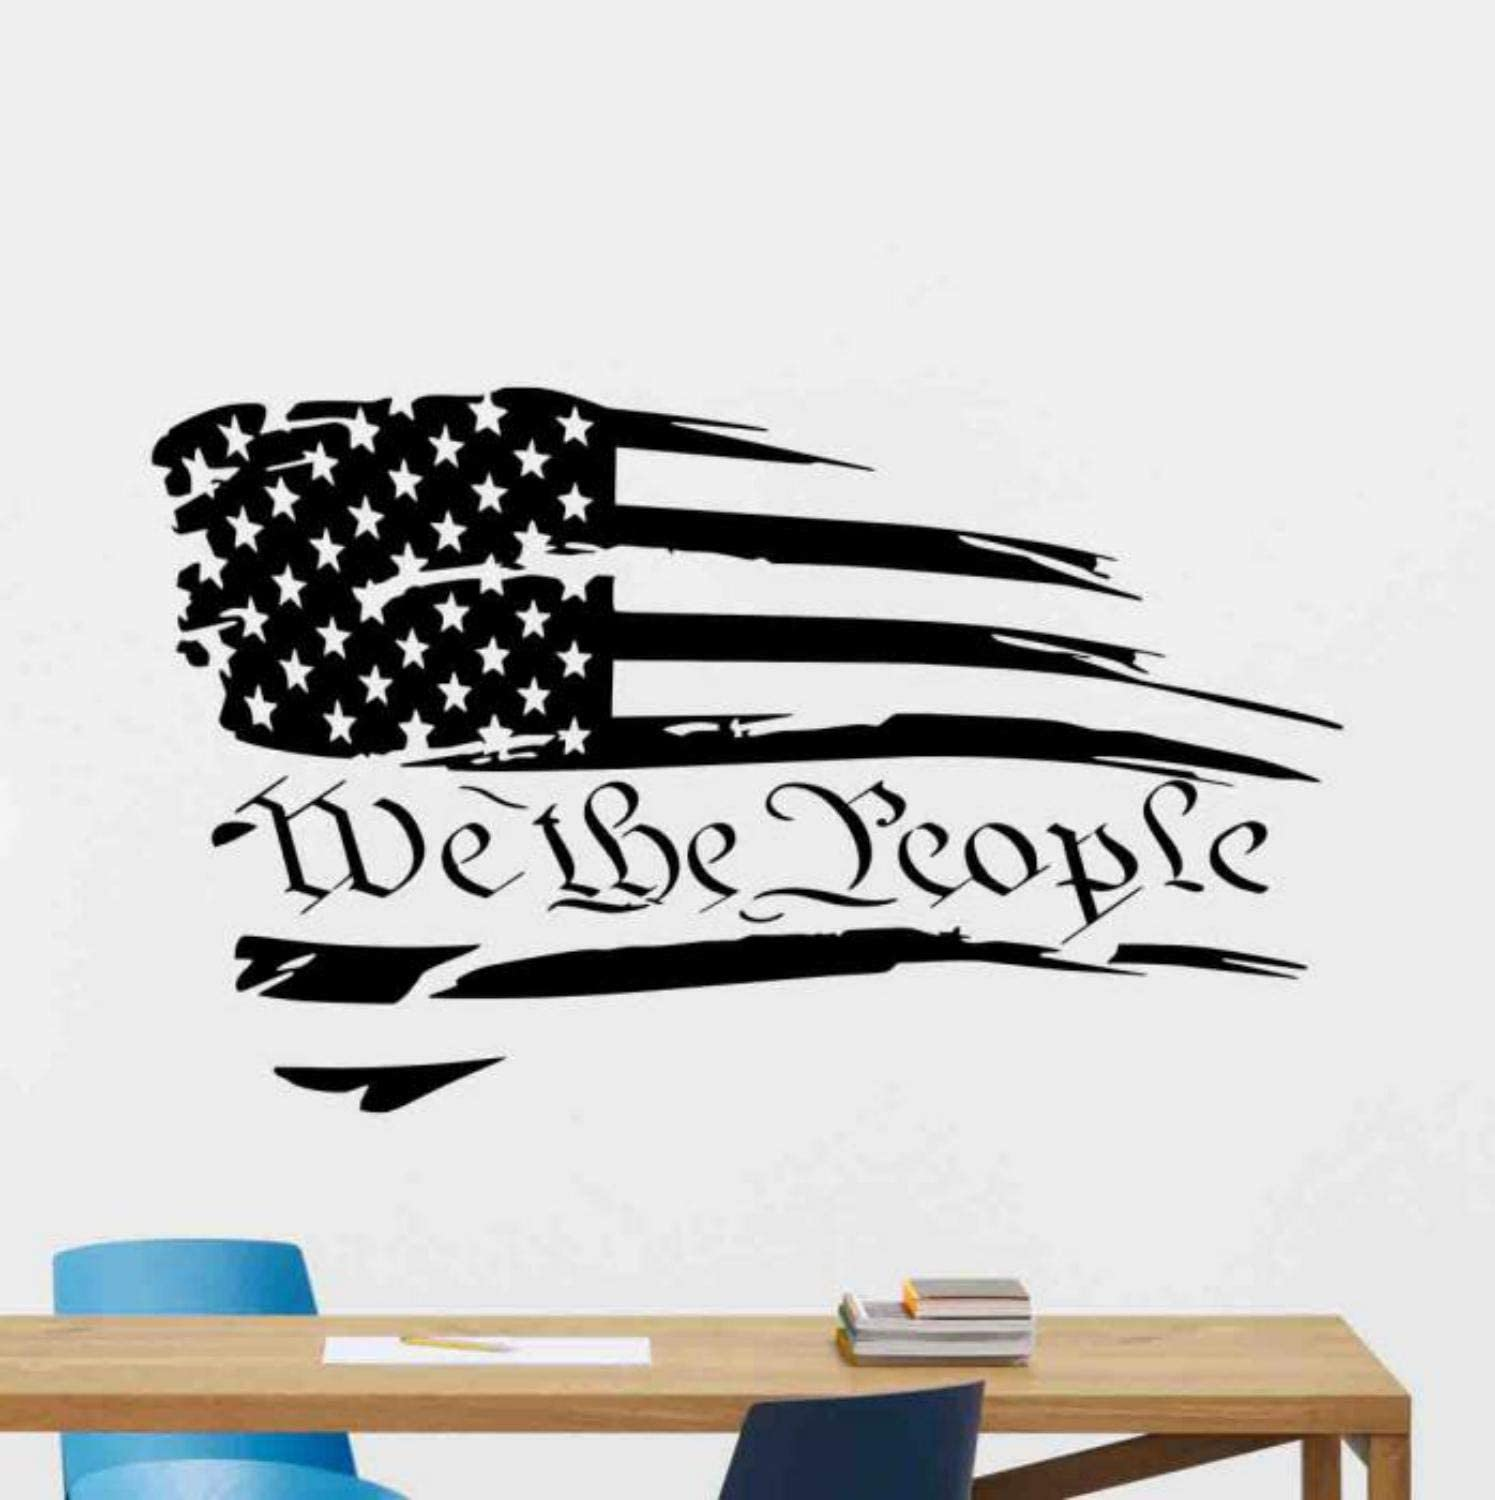 We the People Wall Decal Office Vinyl Sticker US Constitution Distressed American Flag Decal Quotes Office Poster Office Sign Teamwork Gifts Office Wall Decor Family Wall Art Office Mural 1045